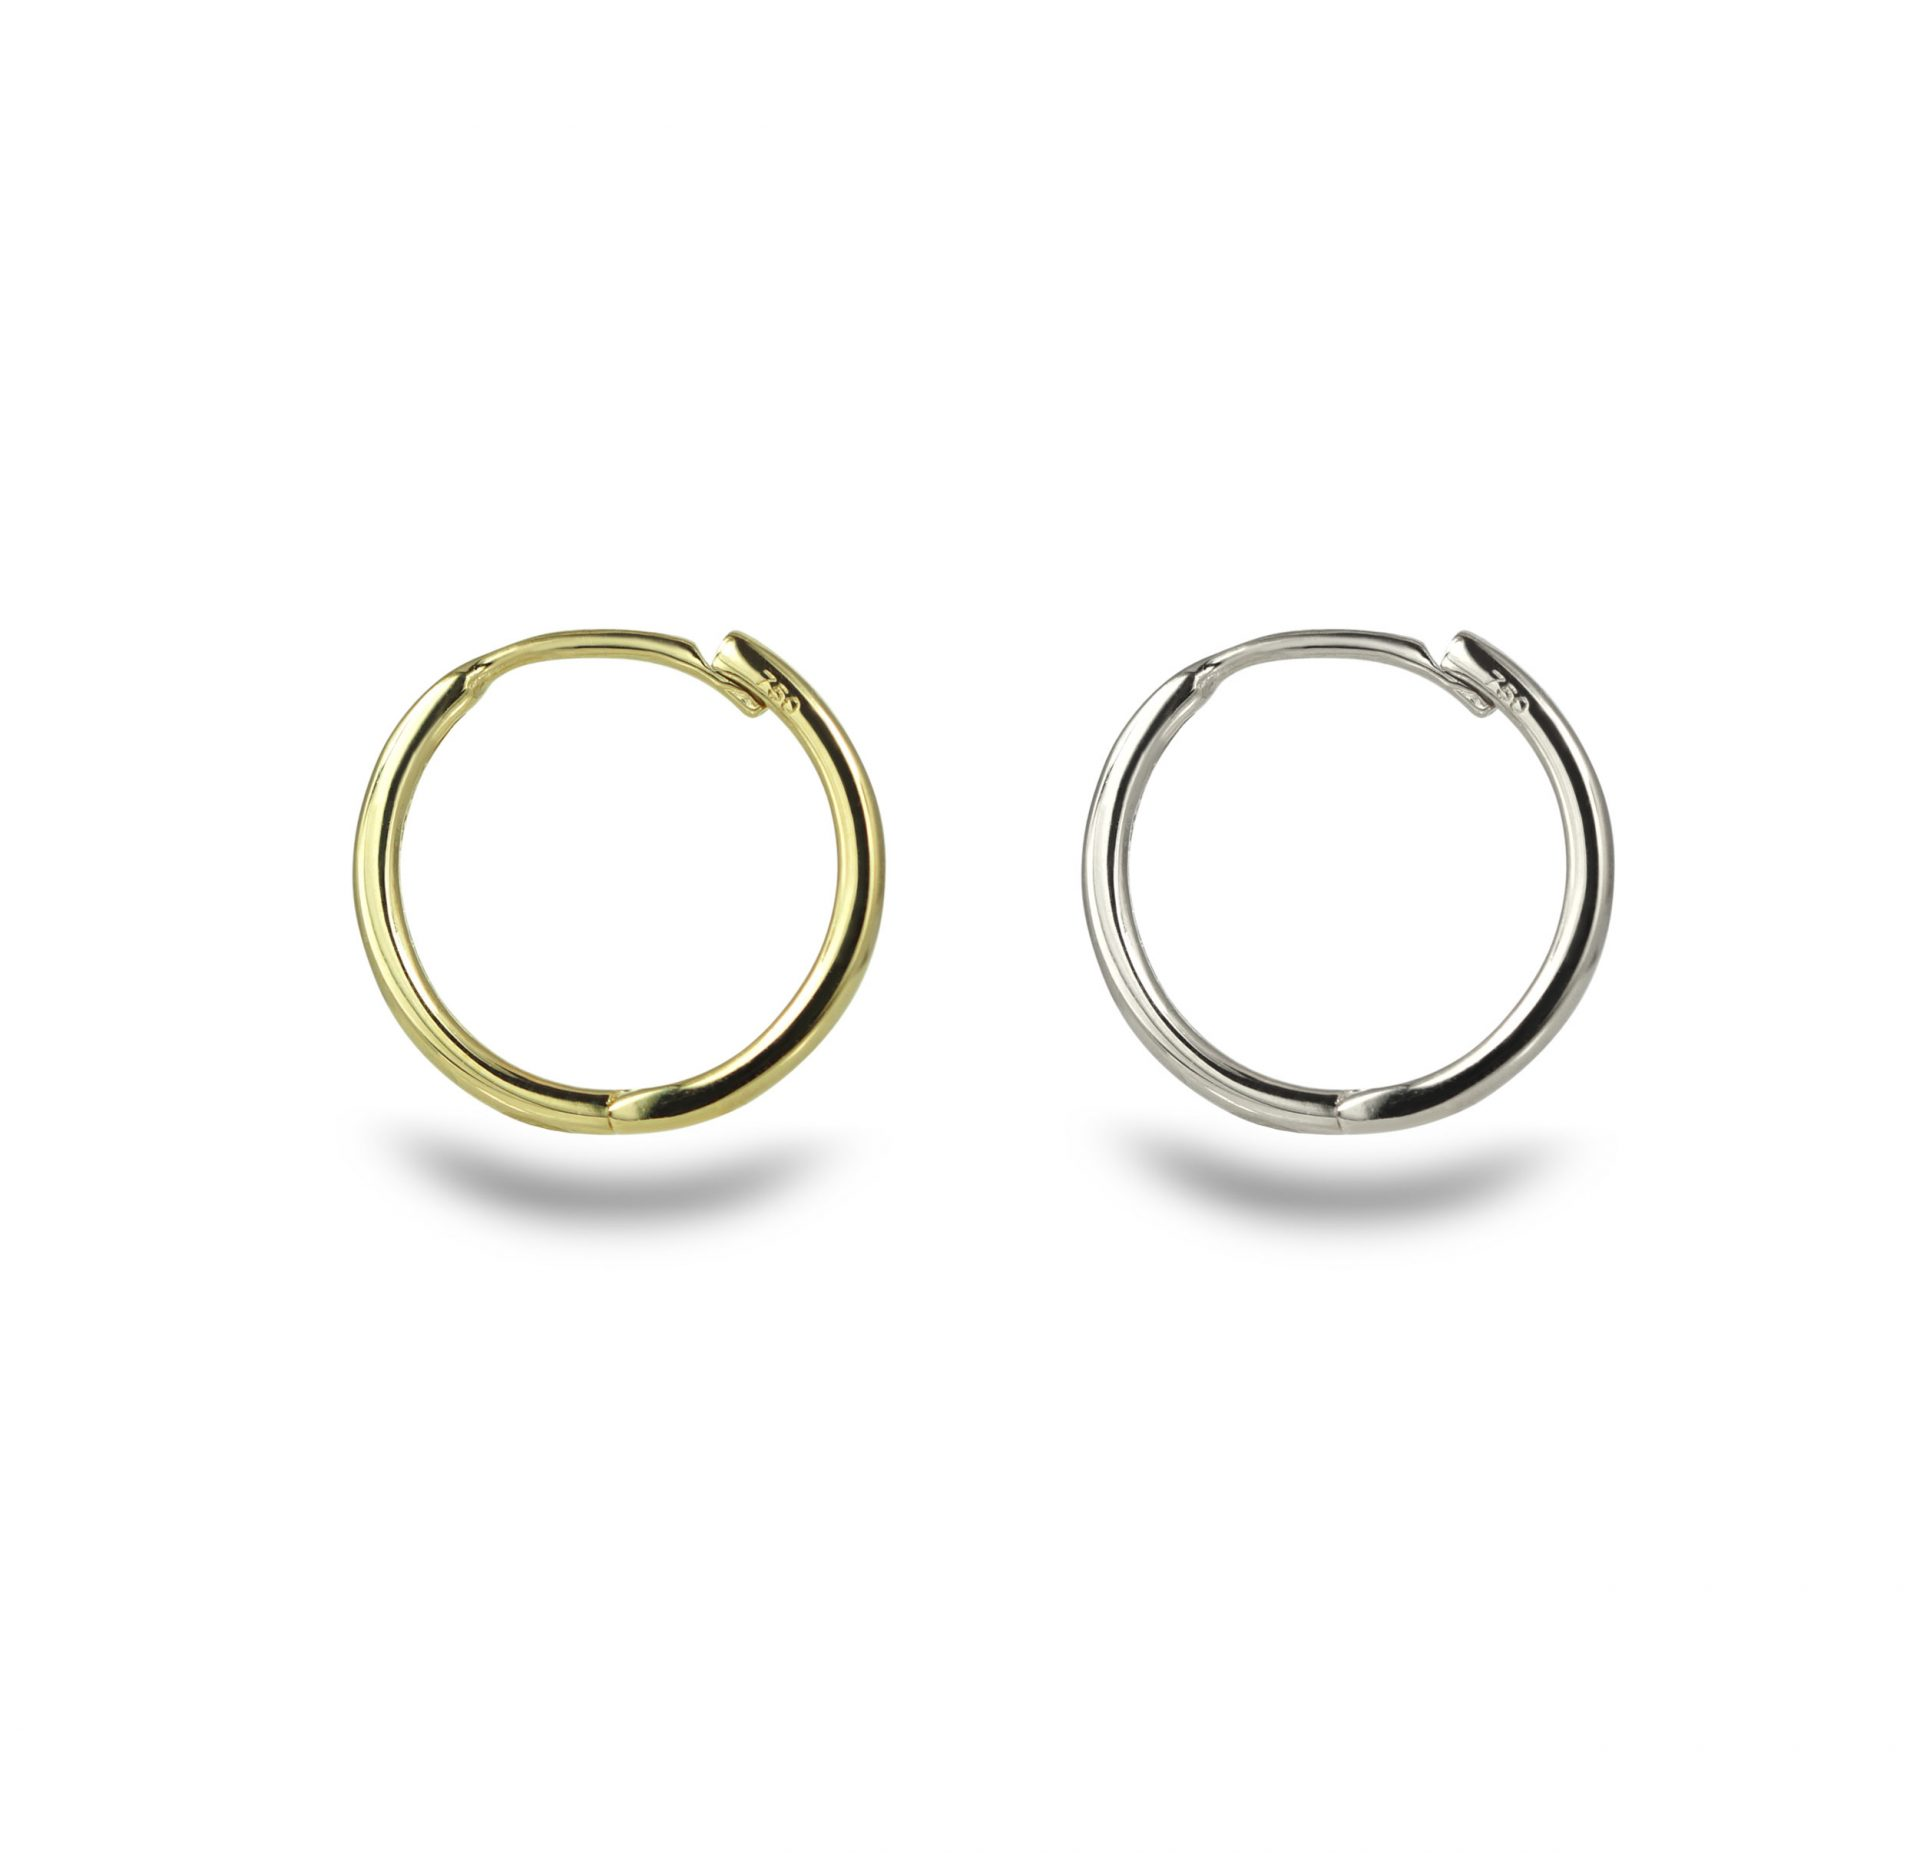 18k-solid-gold-yellow-white-gold–cartilage-earrings-hoops-huggies-lena-cohen-fine-jewellery-london-uk